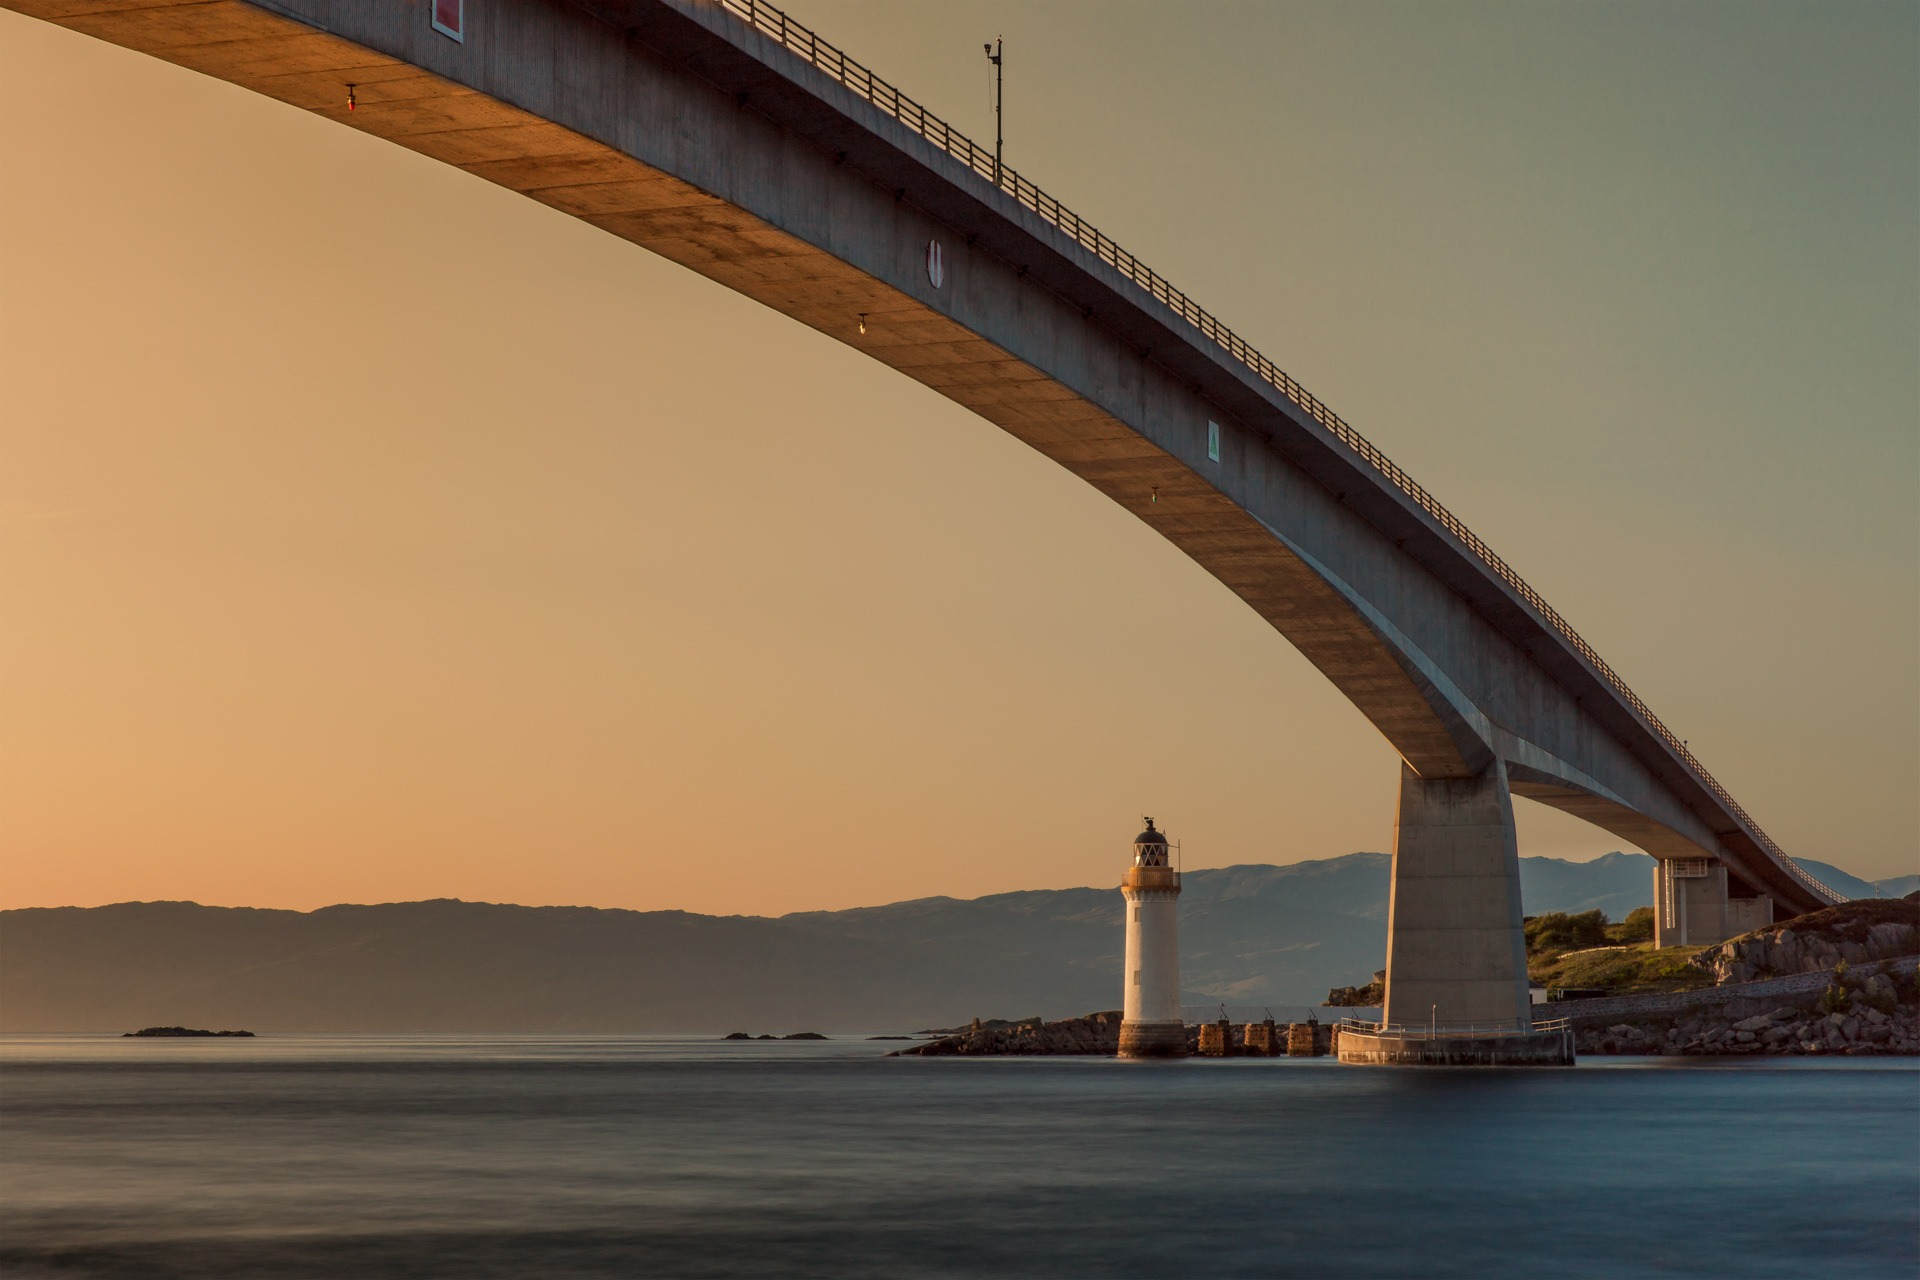 Bridge across water with mountain range in background, next to lighthouse, sunset orange sky